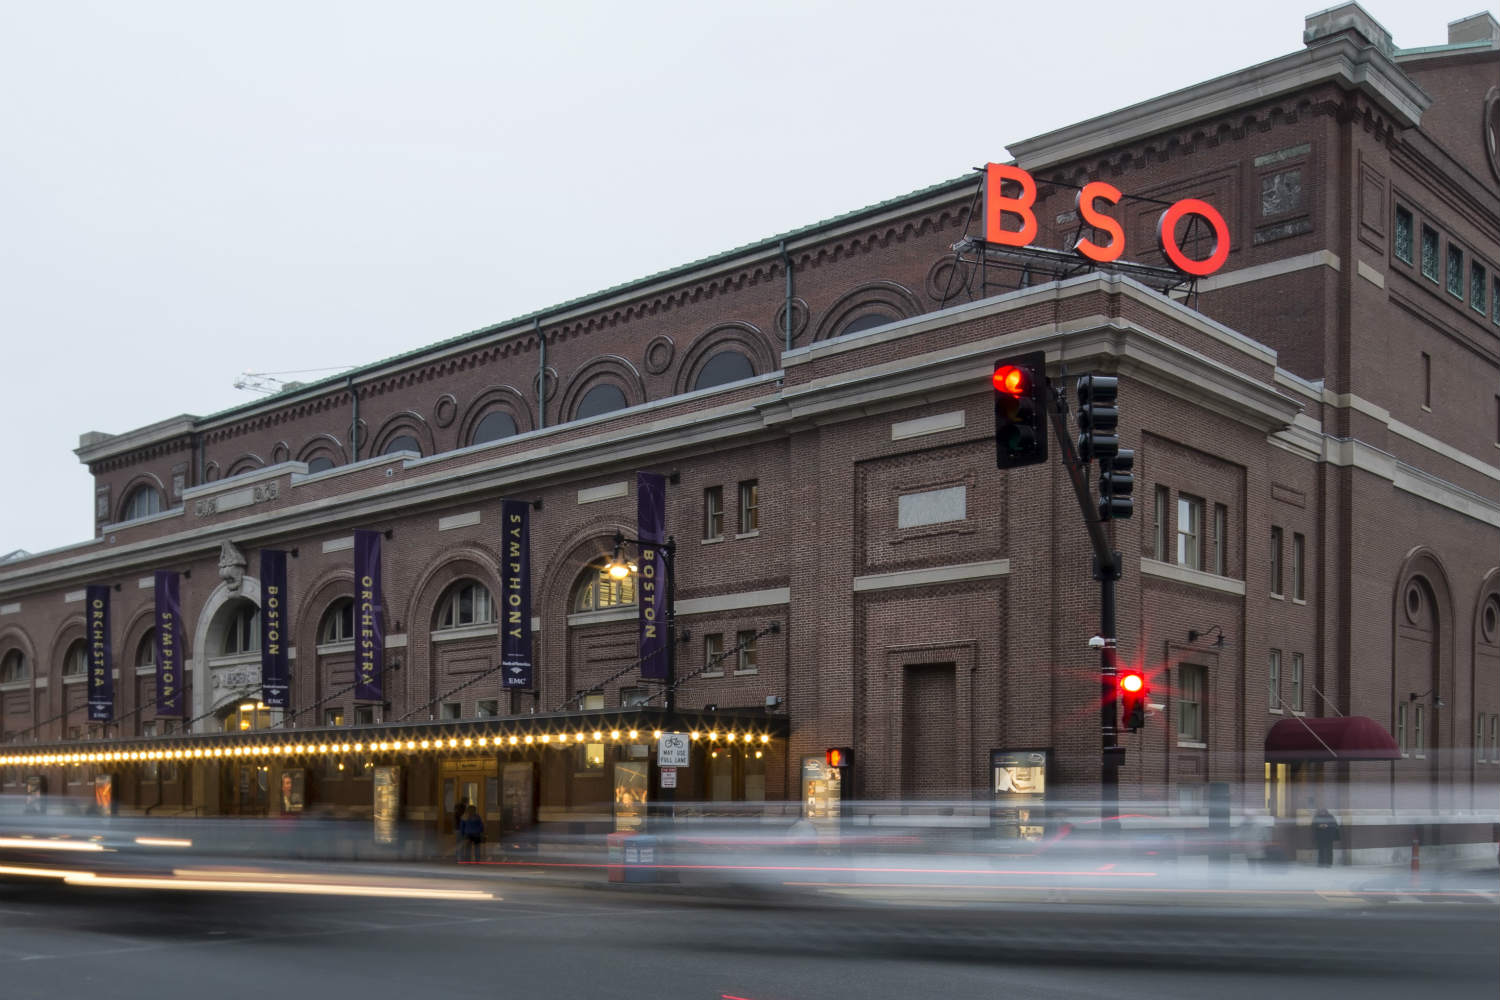 Boston Symphony Hall, home of the Boston Symphony Orchestra